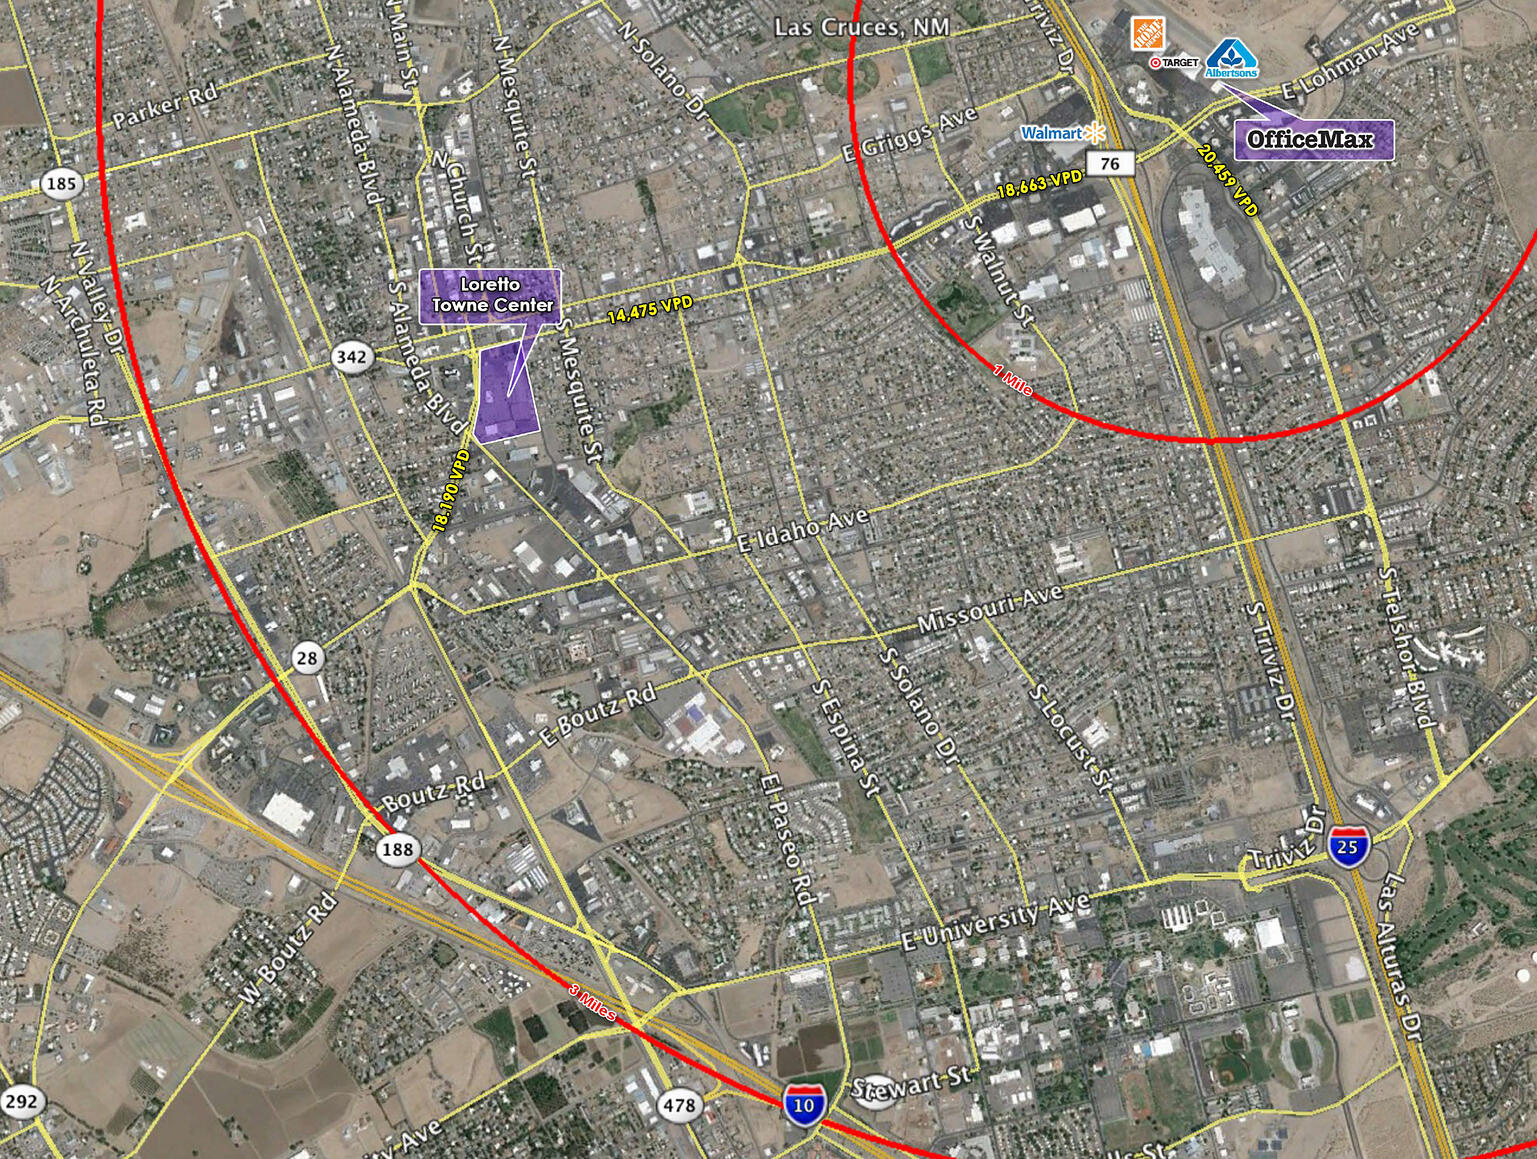 OfficeMaxLasCruces_Aerialmap-2